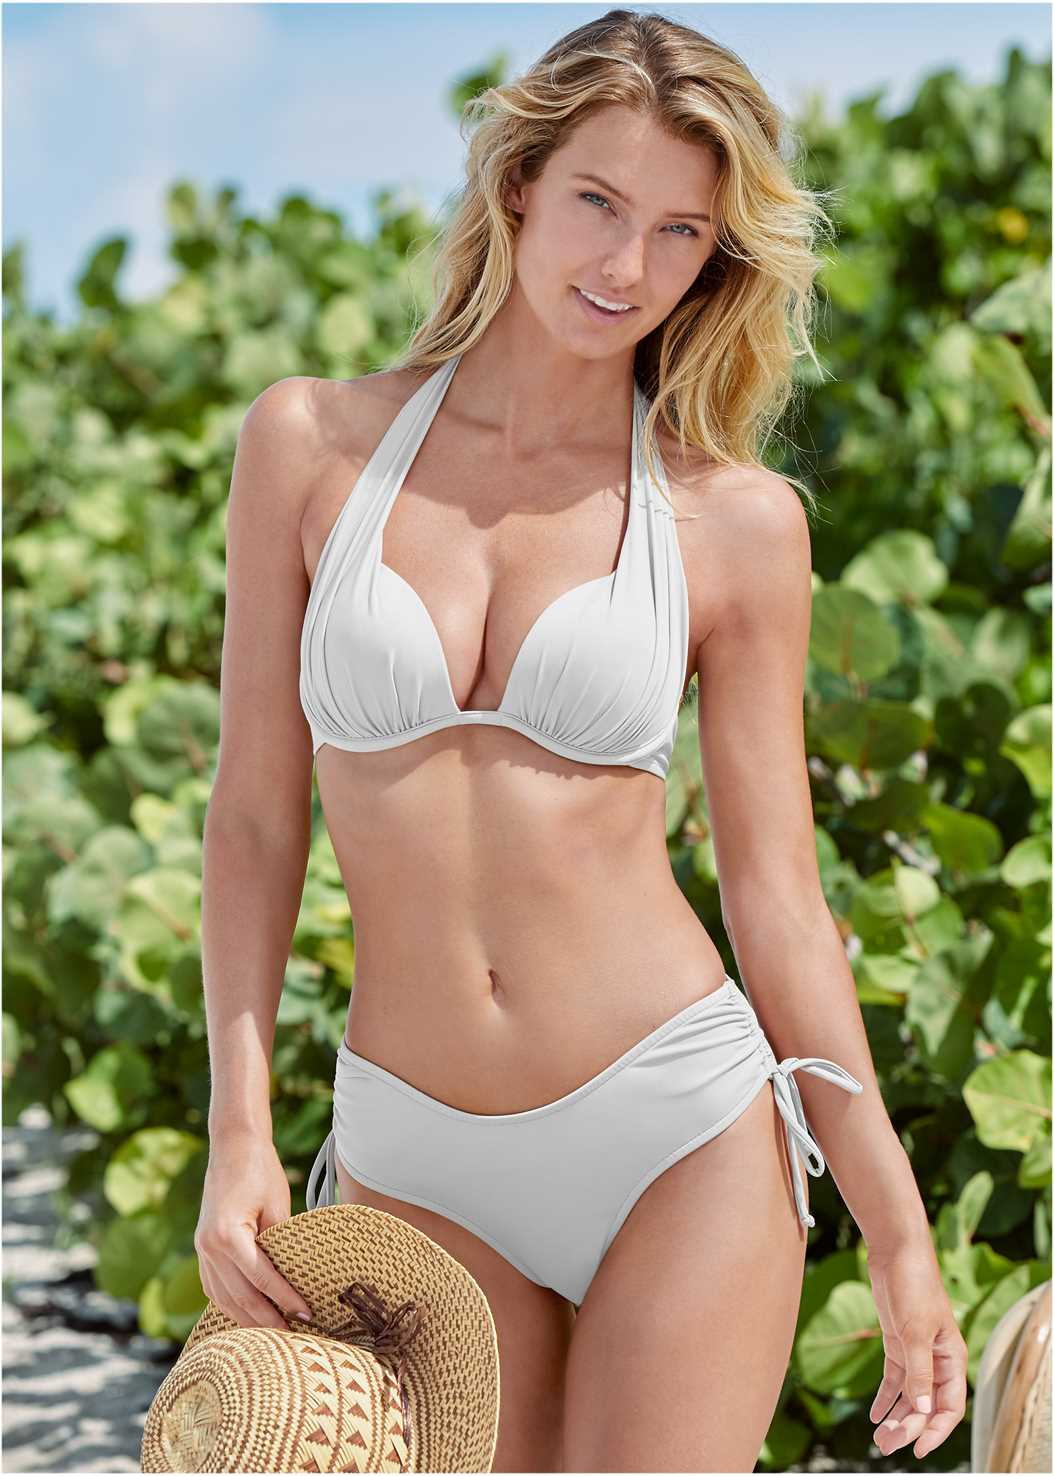 Marilyn Underwire Push Up Halter Top,The Magnolia Moderate Bottom,Scoop Front Classic Bikini Bottom ,Low Rise Bikini Bottom,String Side Bikini Bottom,Ultra High Waist Bottom,Pull On Tunic,Embellished Sandals,Leaf Earring Set,Net Bag